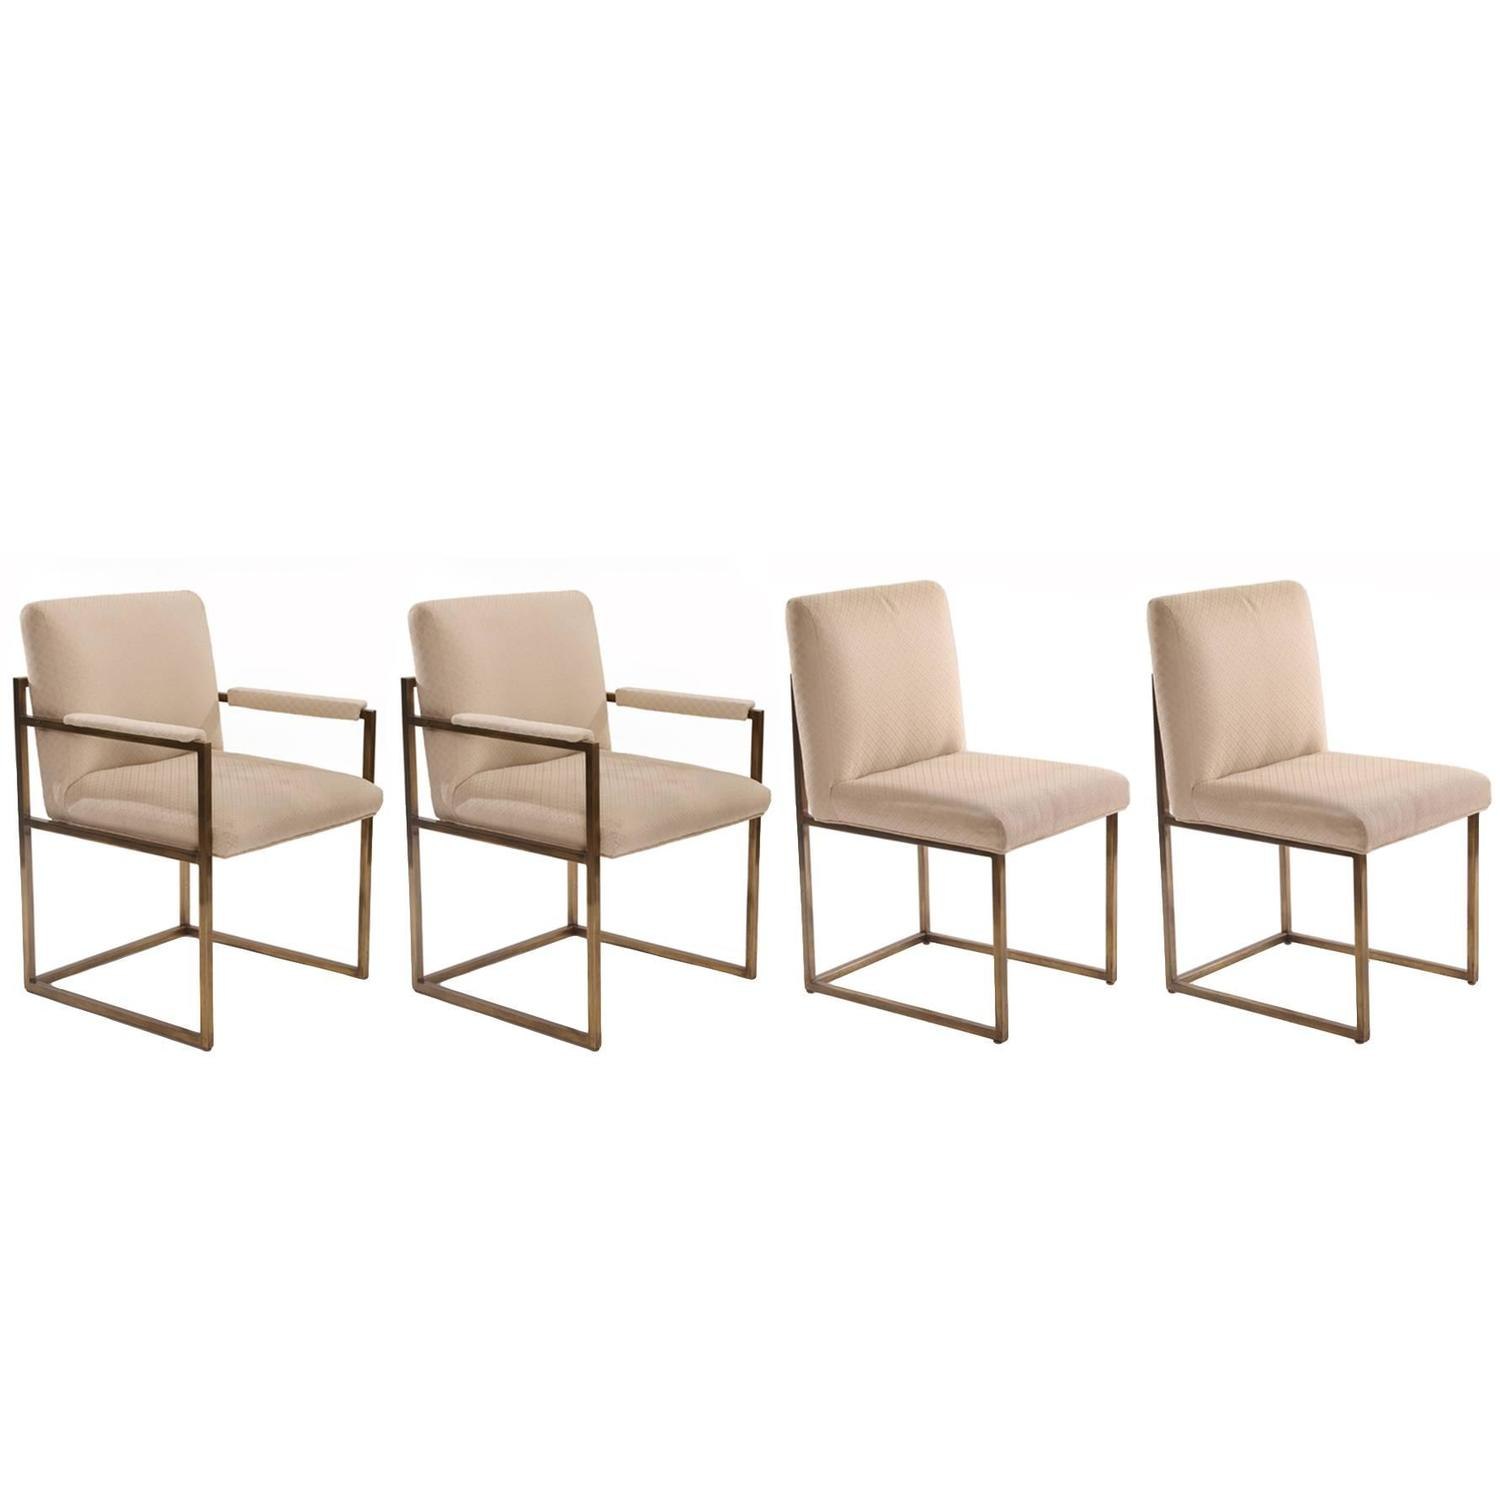 Beau Milo Baughman Thayer Coggin Bronze Dining Chairs For Sale At 1stdibs